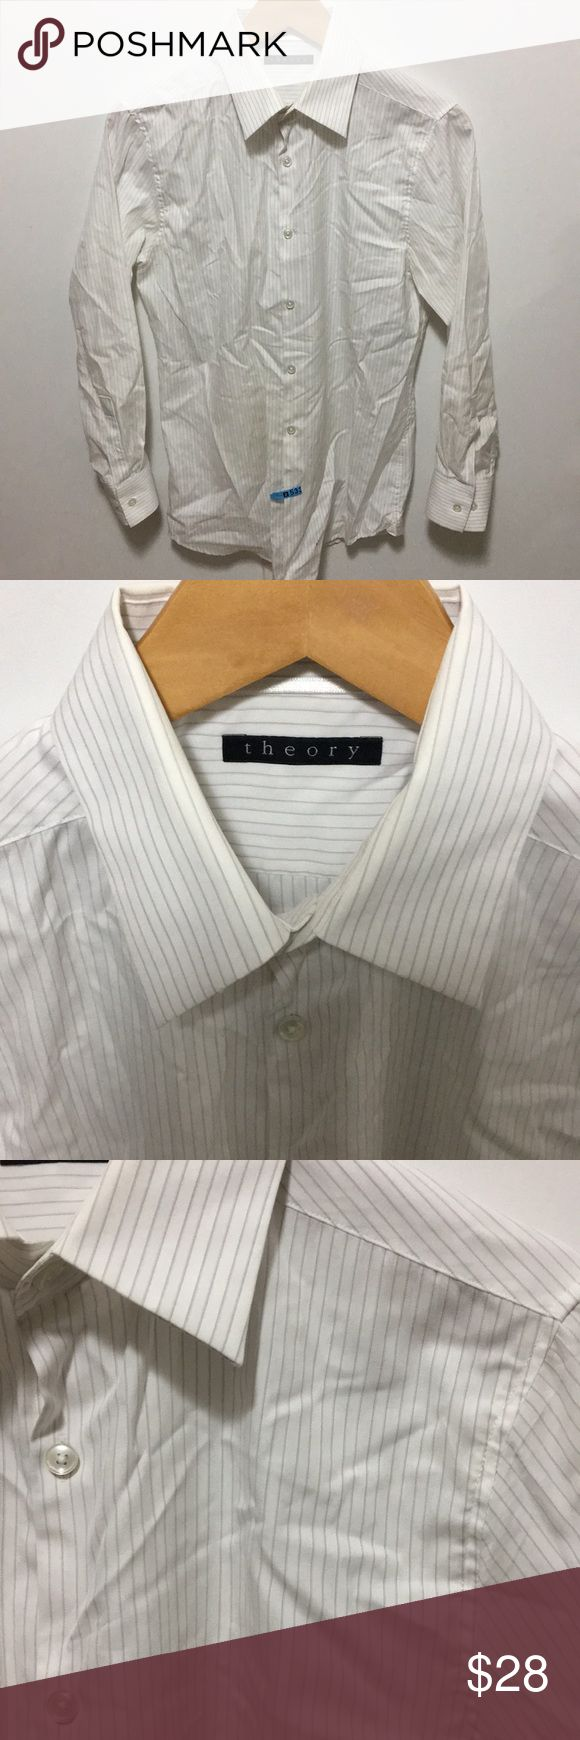 Theory Men's 15R White Button Down Dress Shirt Theory men's size 15 regular white with stripes button down dress shirt. Some chipped buttons from dry cleaning. Overall, in very good condition. Dry clean only. Theory Shirts Dress Shirts